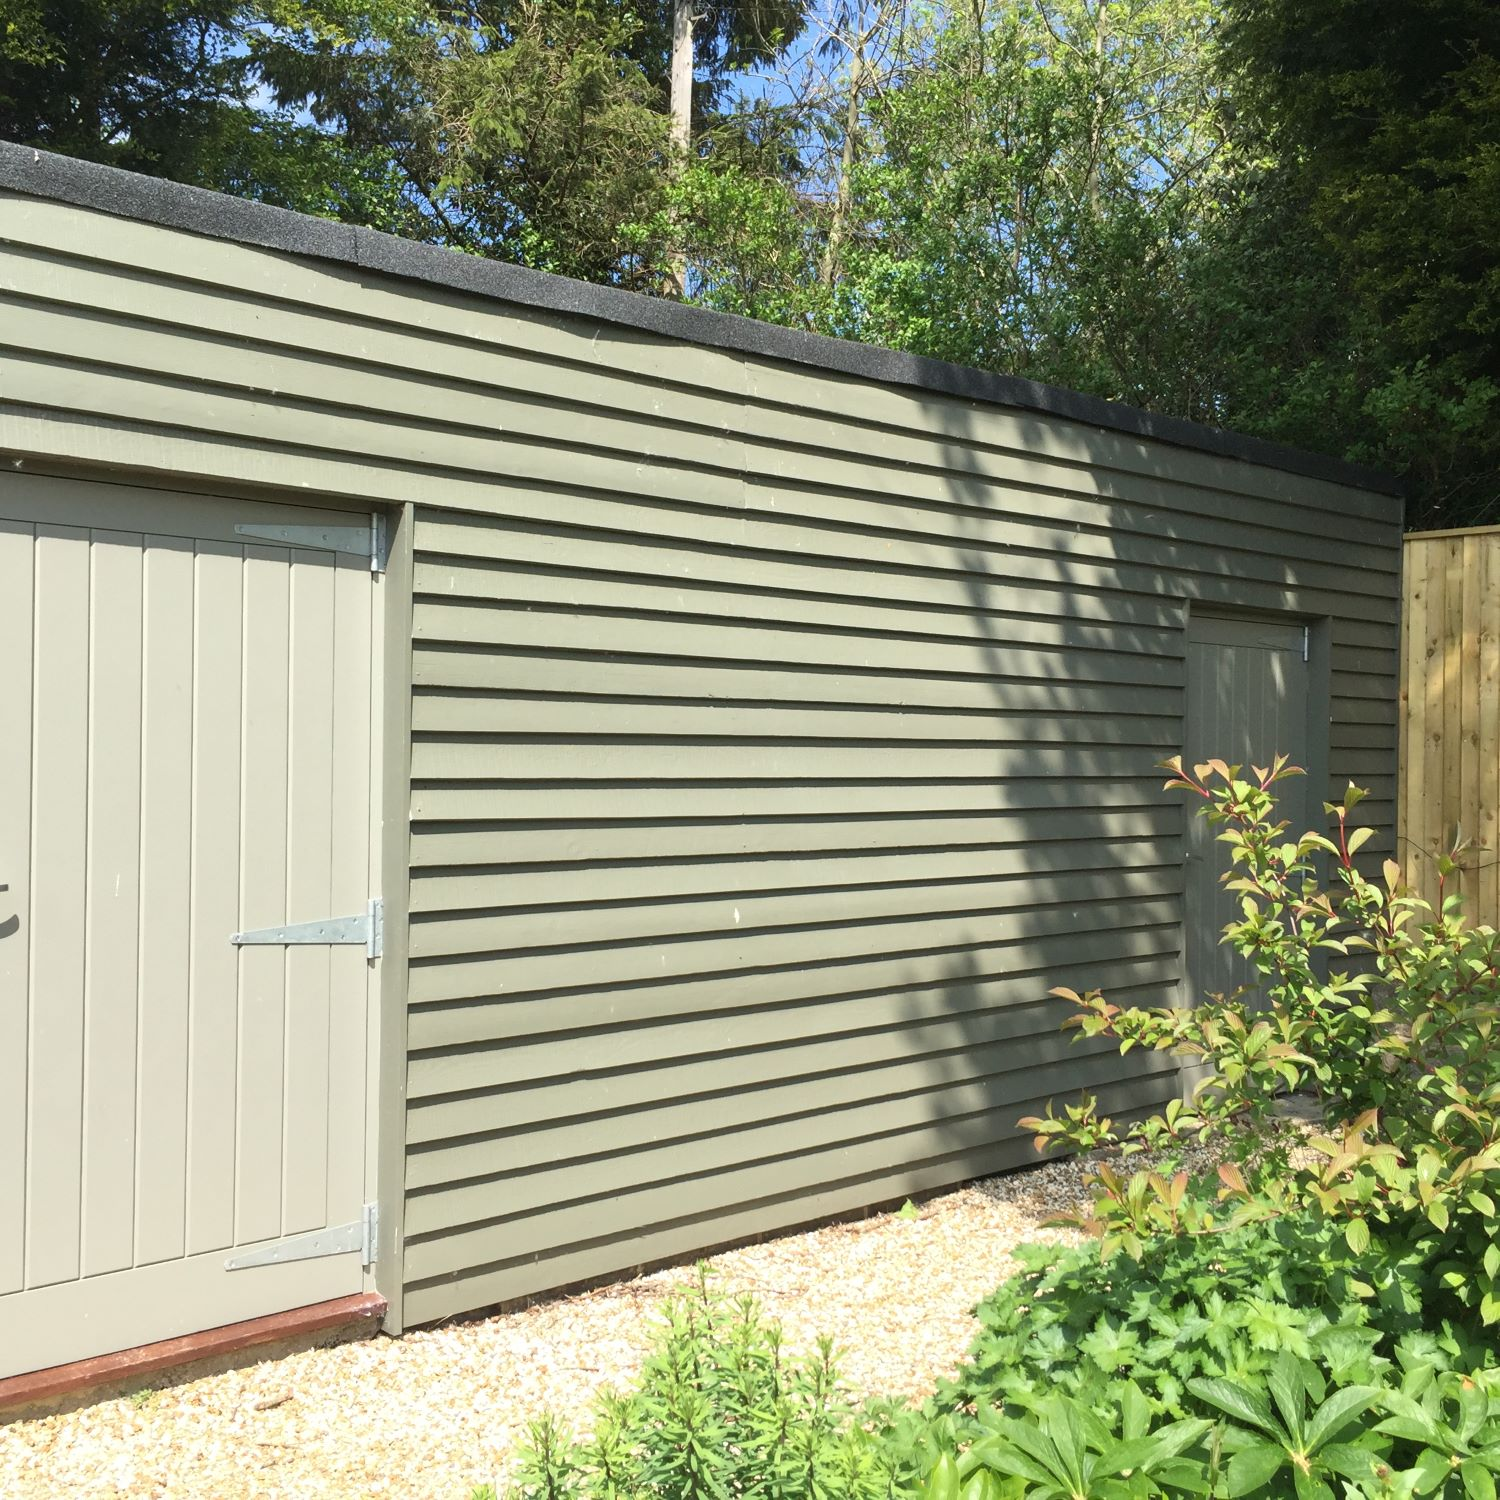 The former garage, disguised with painted timber cladding, makes a smart garden store